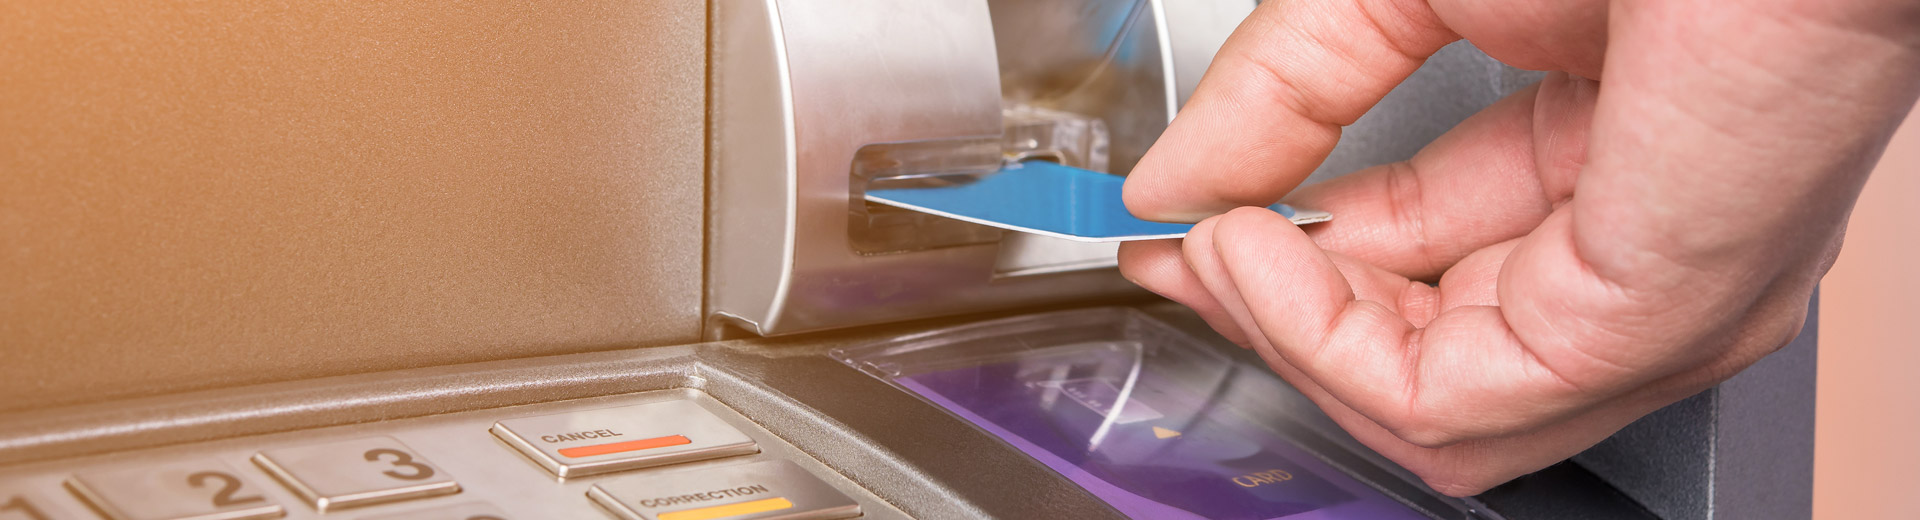 Steps to take if your Credit Card is Lost or Stolen – Citi India